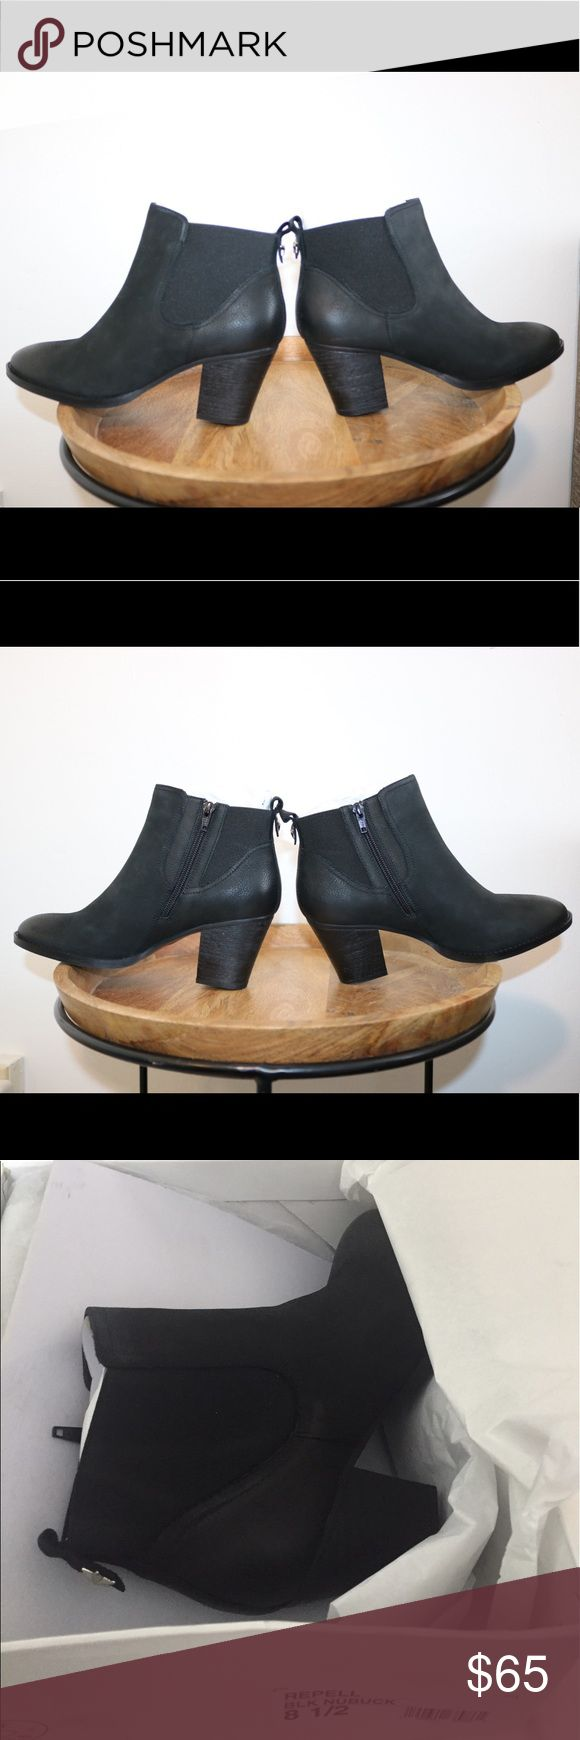 NIB Steve Madden Repell Black Nubuck Booties Brand new in box. 3 pairs available. Please note photos were taken with a high resolution camera so things that may look like flaws are just lighting and resolution. I disclose all issues within the item description. Steve Madden Shoes Ankle Boots & Booties